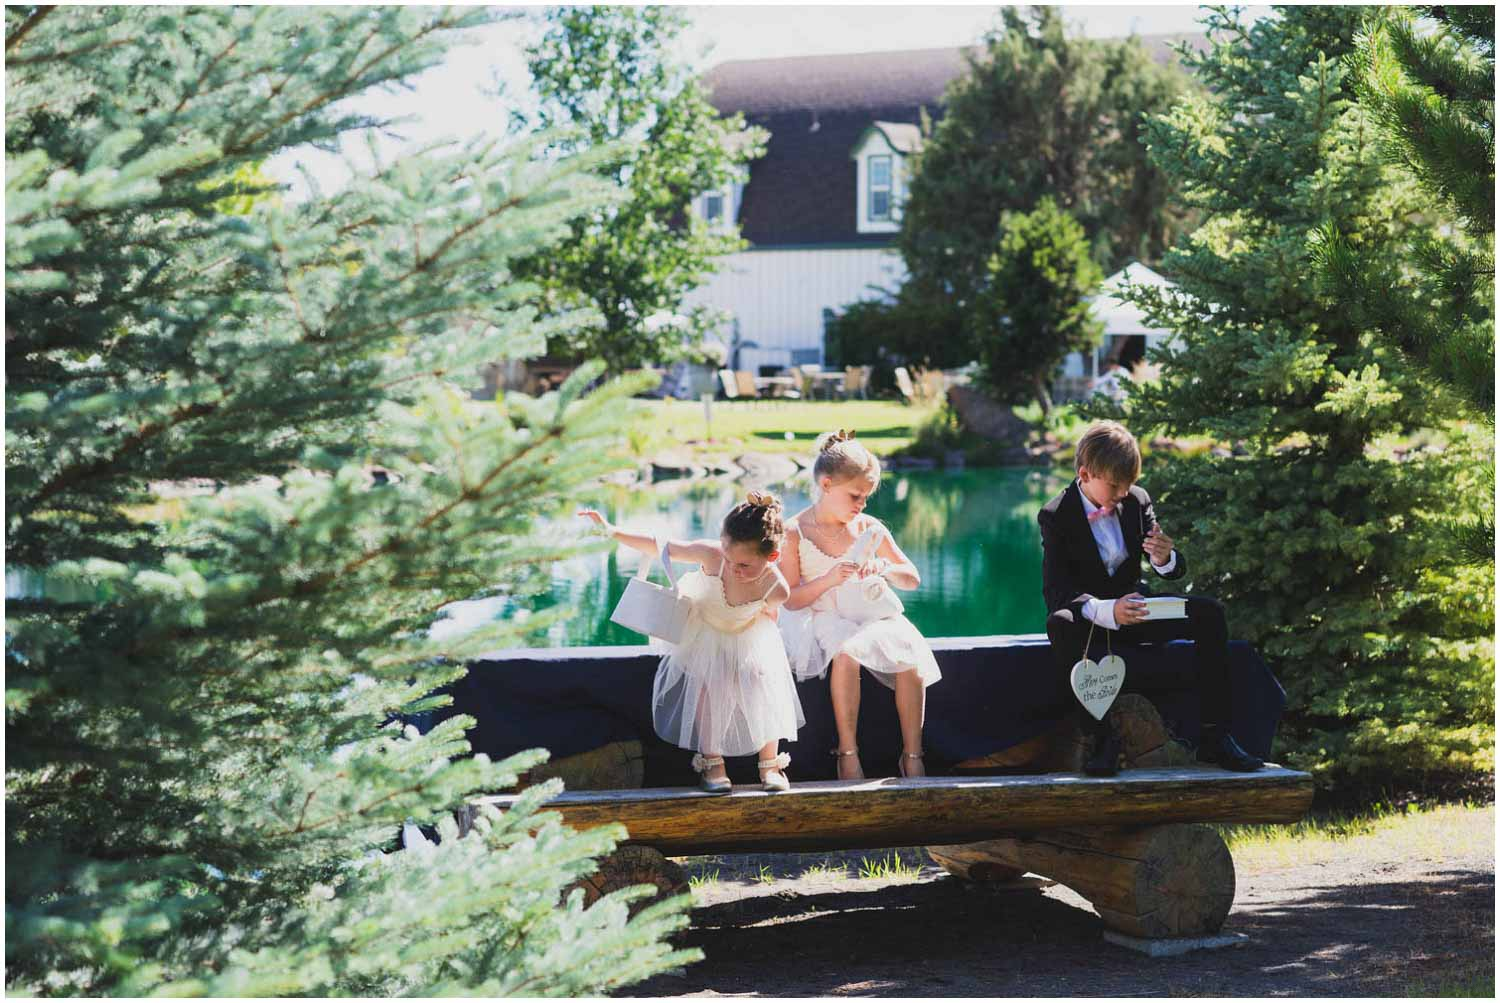 flower girls and ring bearer waiting by the pond for the ceremony to begin